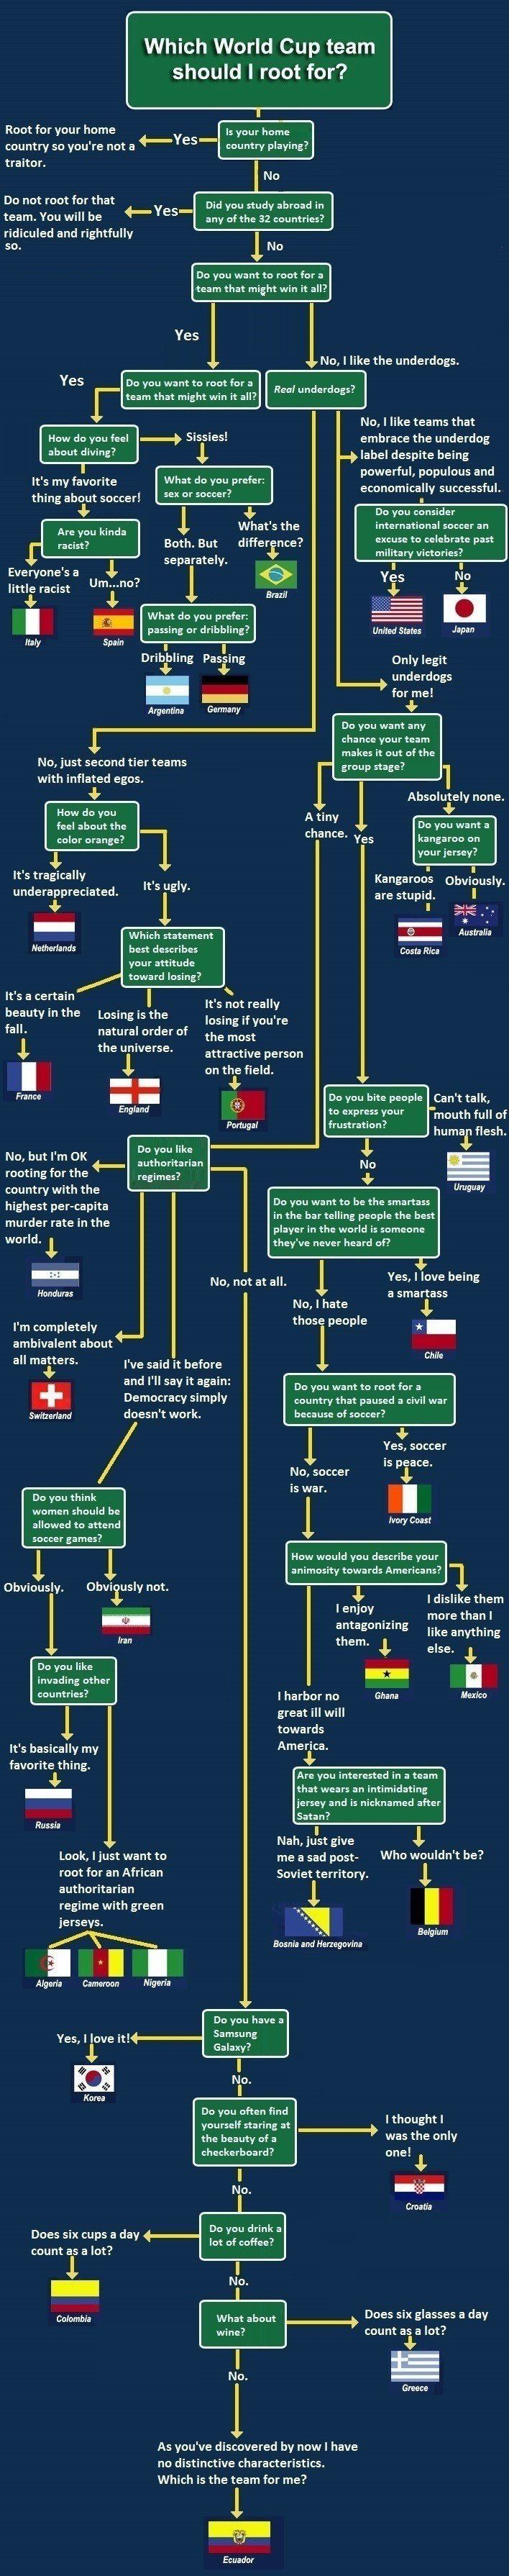 For Any Confused World Cup Fans, This Is Absolutely Genius. Half these relate to hetalia no?! Aha